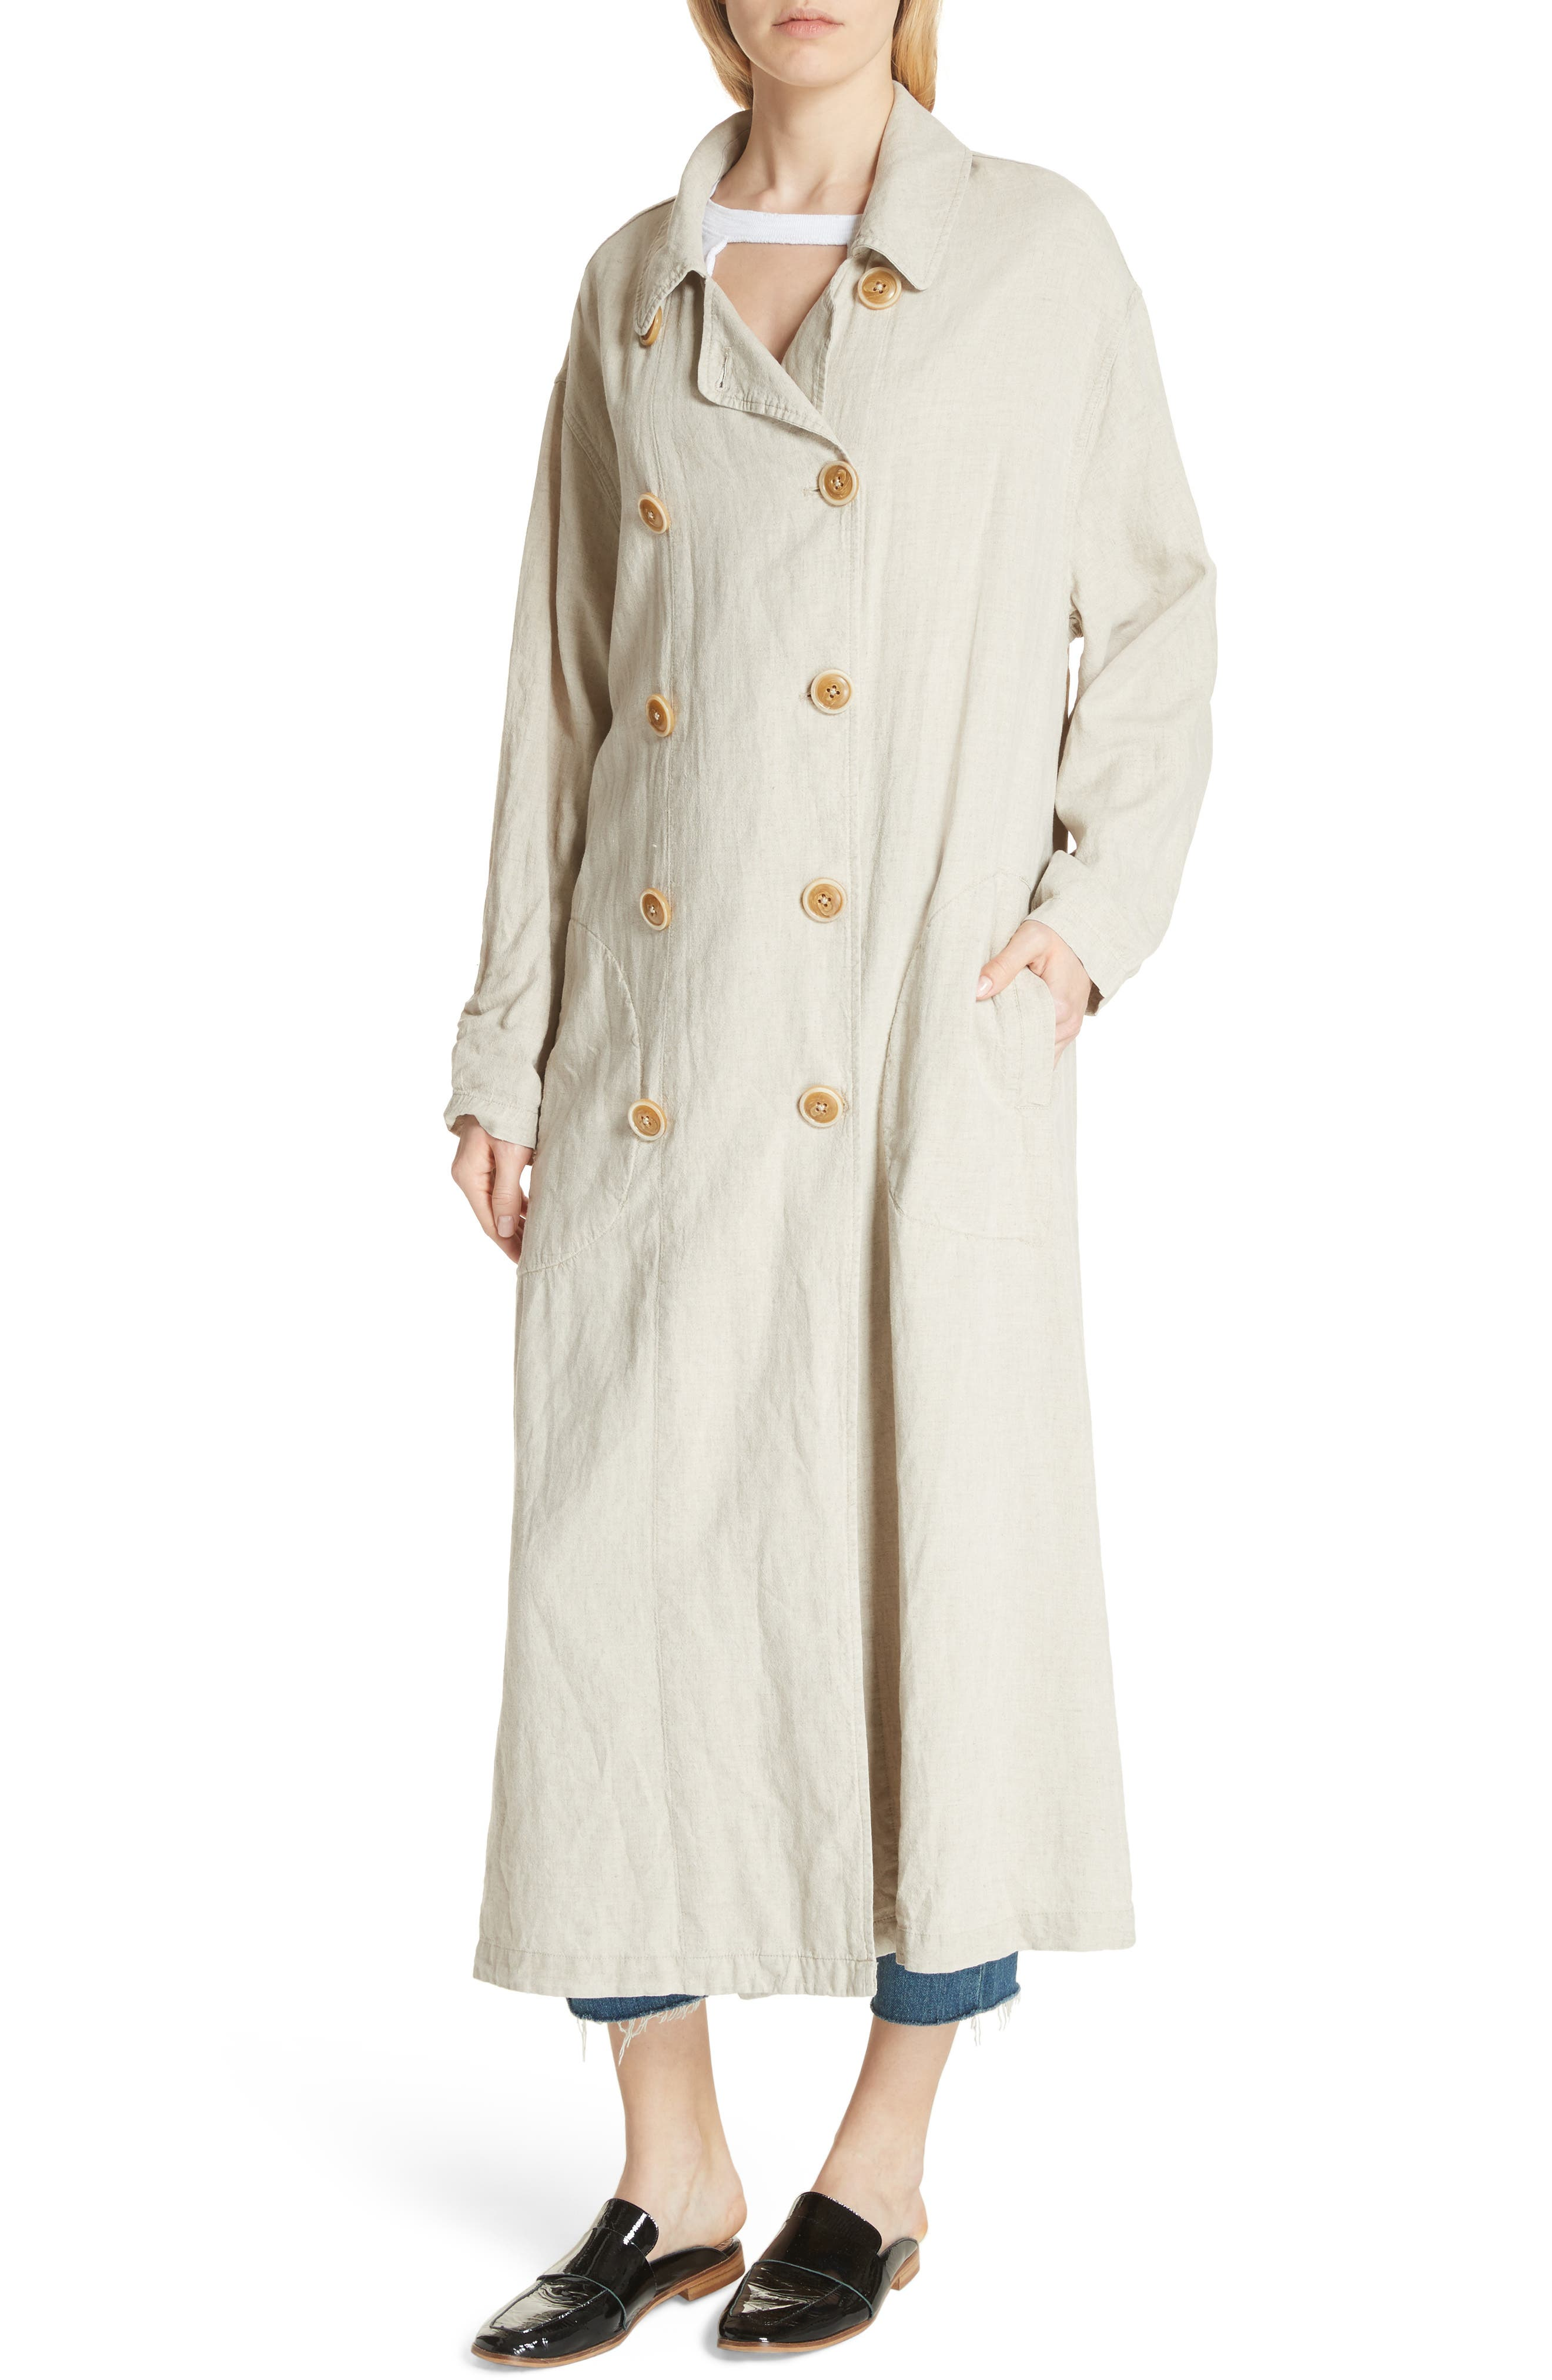 Sweet Melody Duster Jacket,                             Alternate thumbnail 4, color,                             Sand